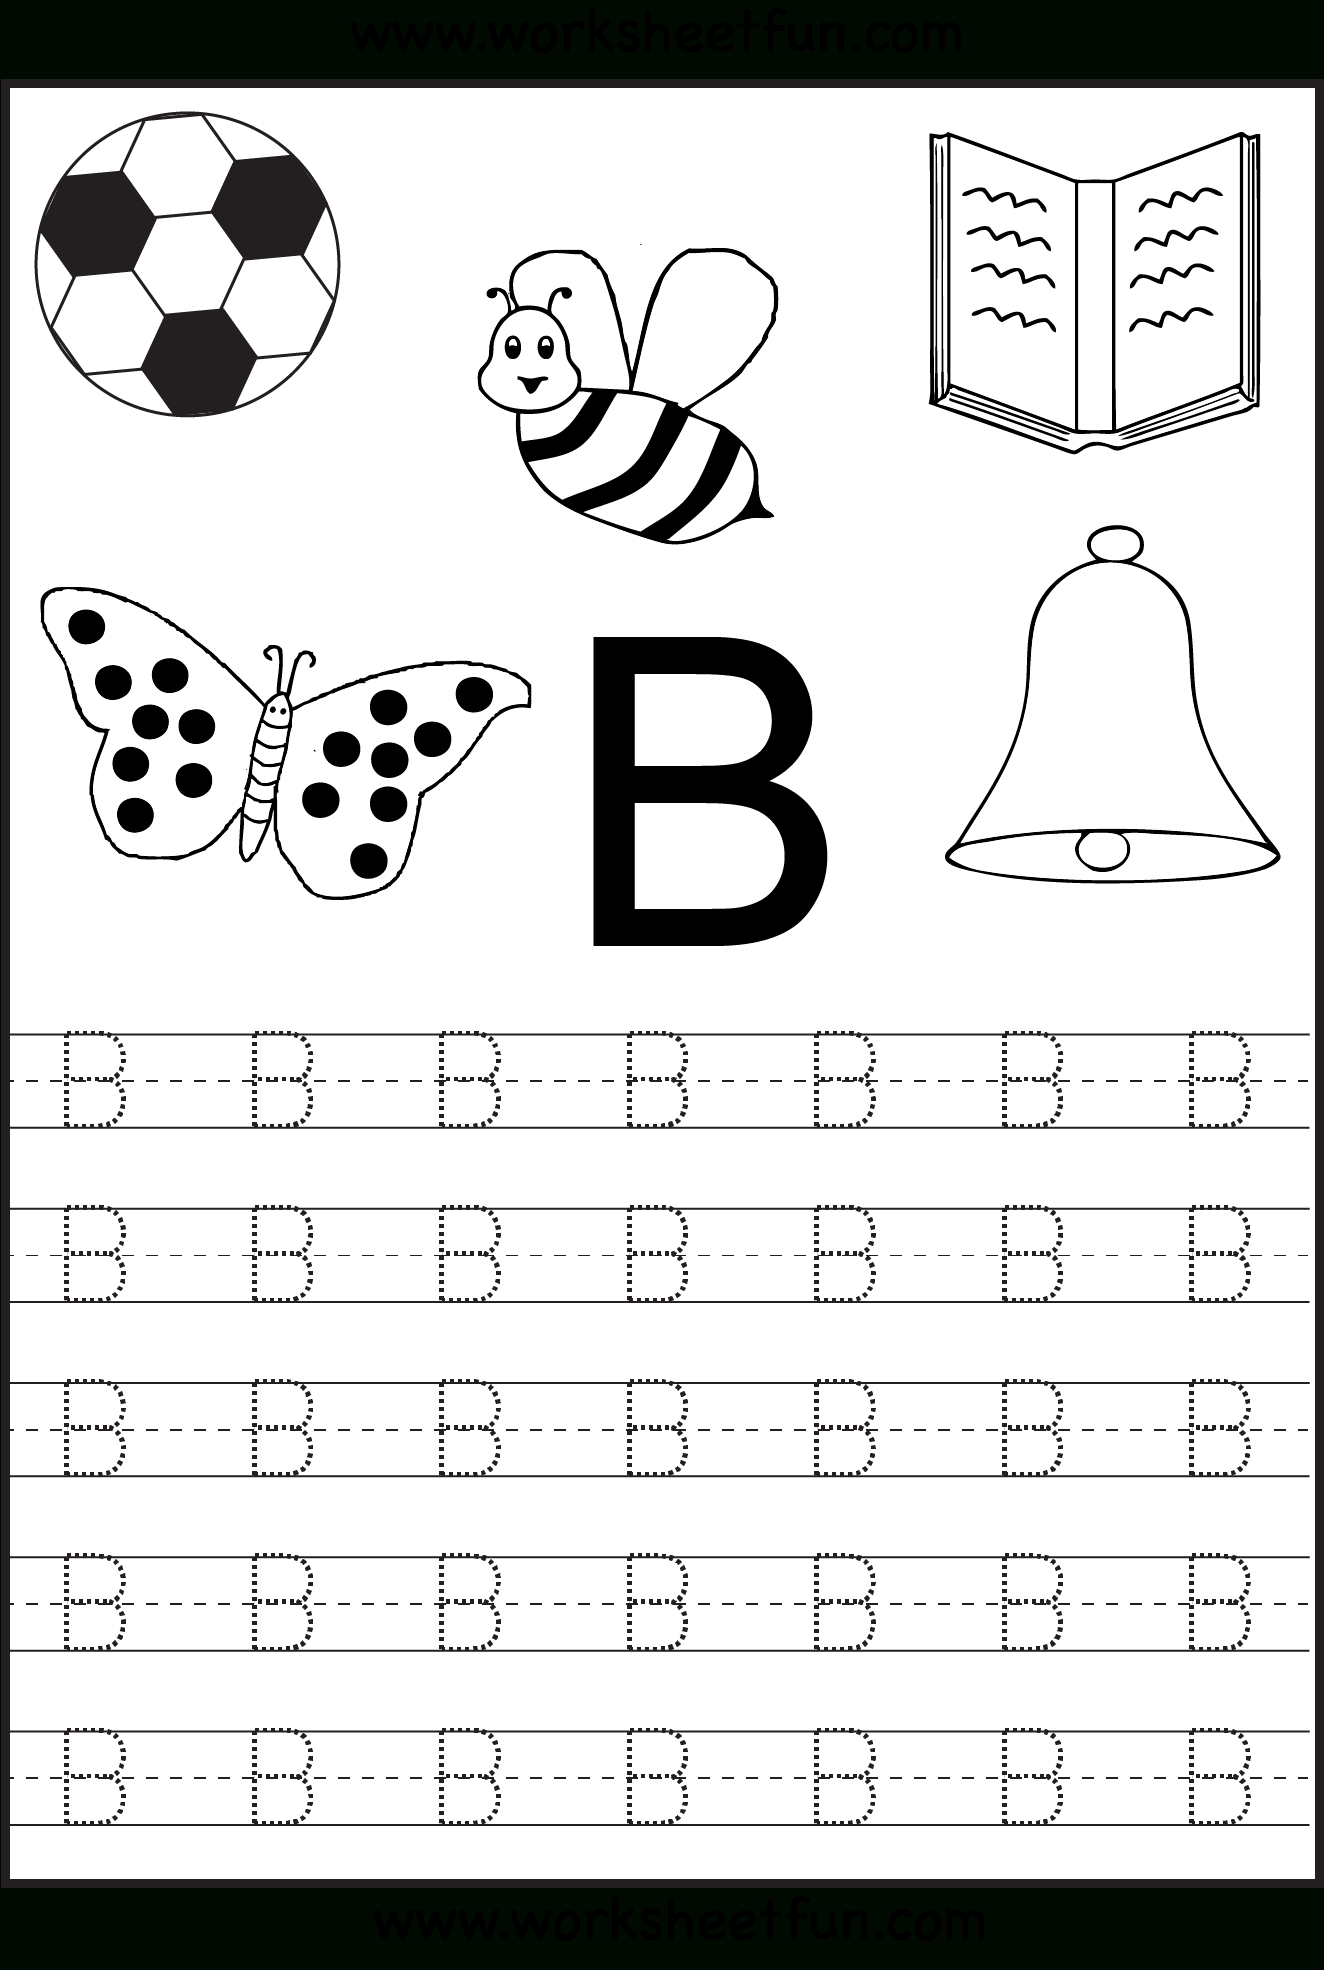 Free Printable Letter Tracing Worksheets For Kindergarten – 26 - Free Printable Alphabet Worksheets For Grade 1